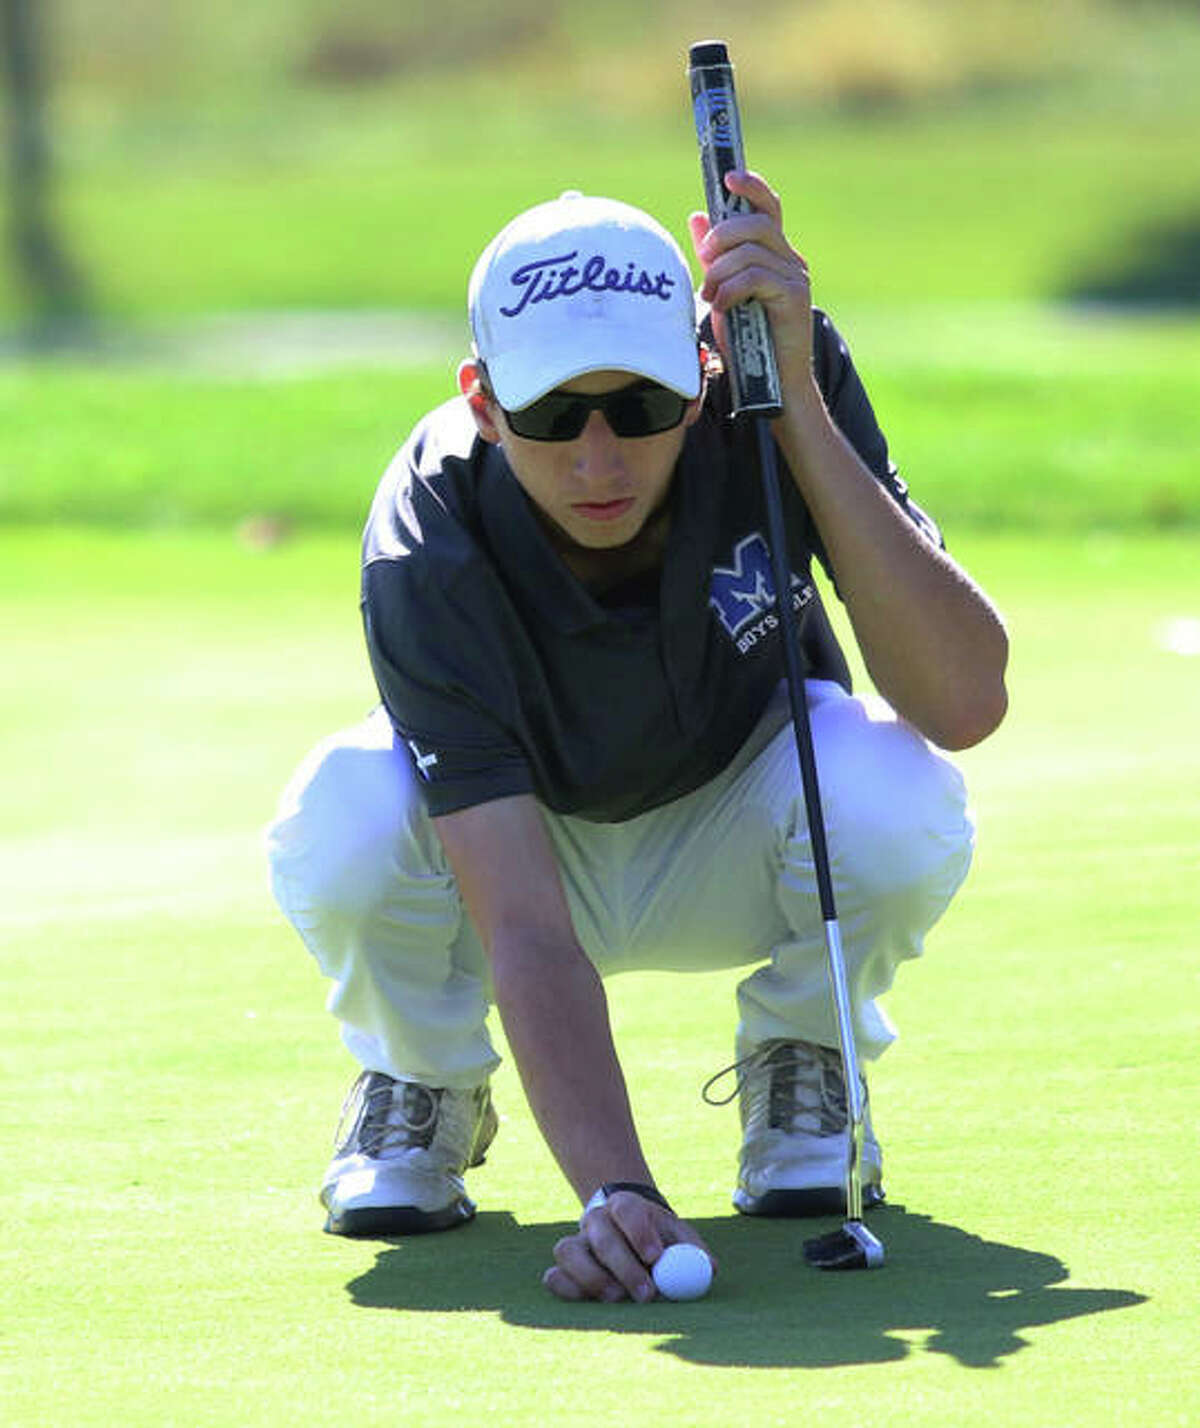 Marquette's William Roderfeld lines up a putt in the Class 1A regional last week at Olin. Roderfeld's junior season ended with an 83 in the sectional in West Frankfort.